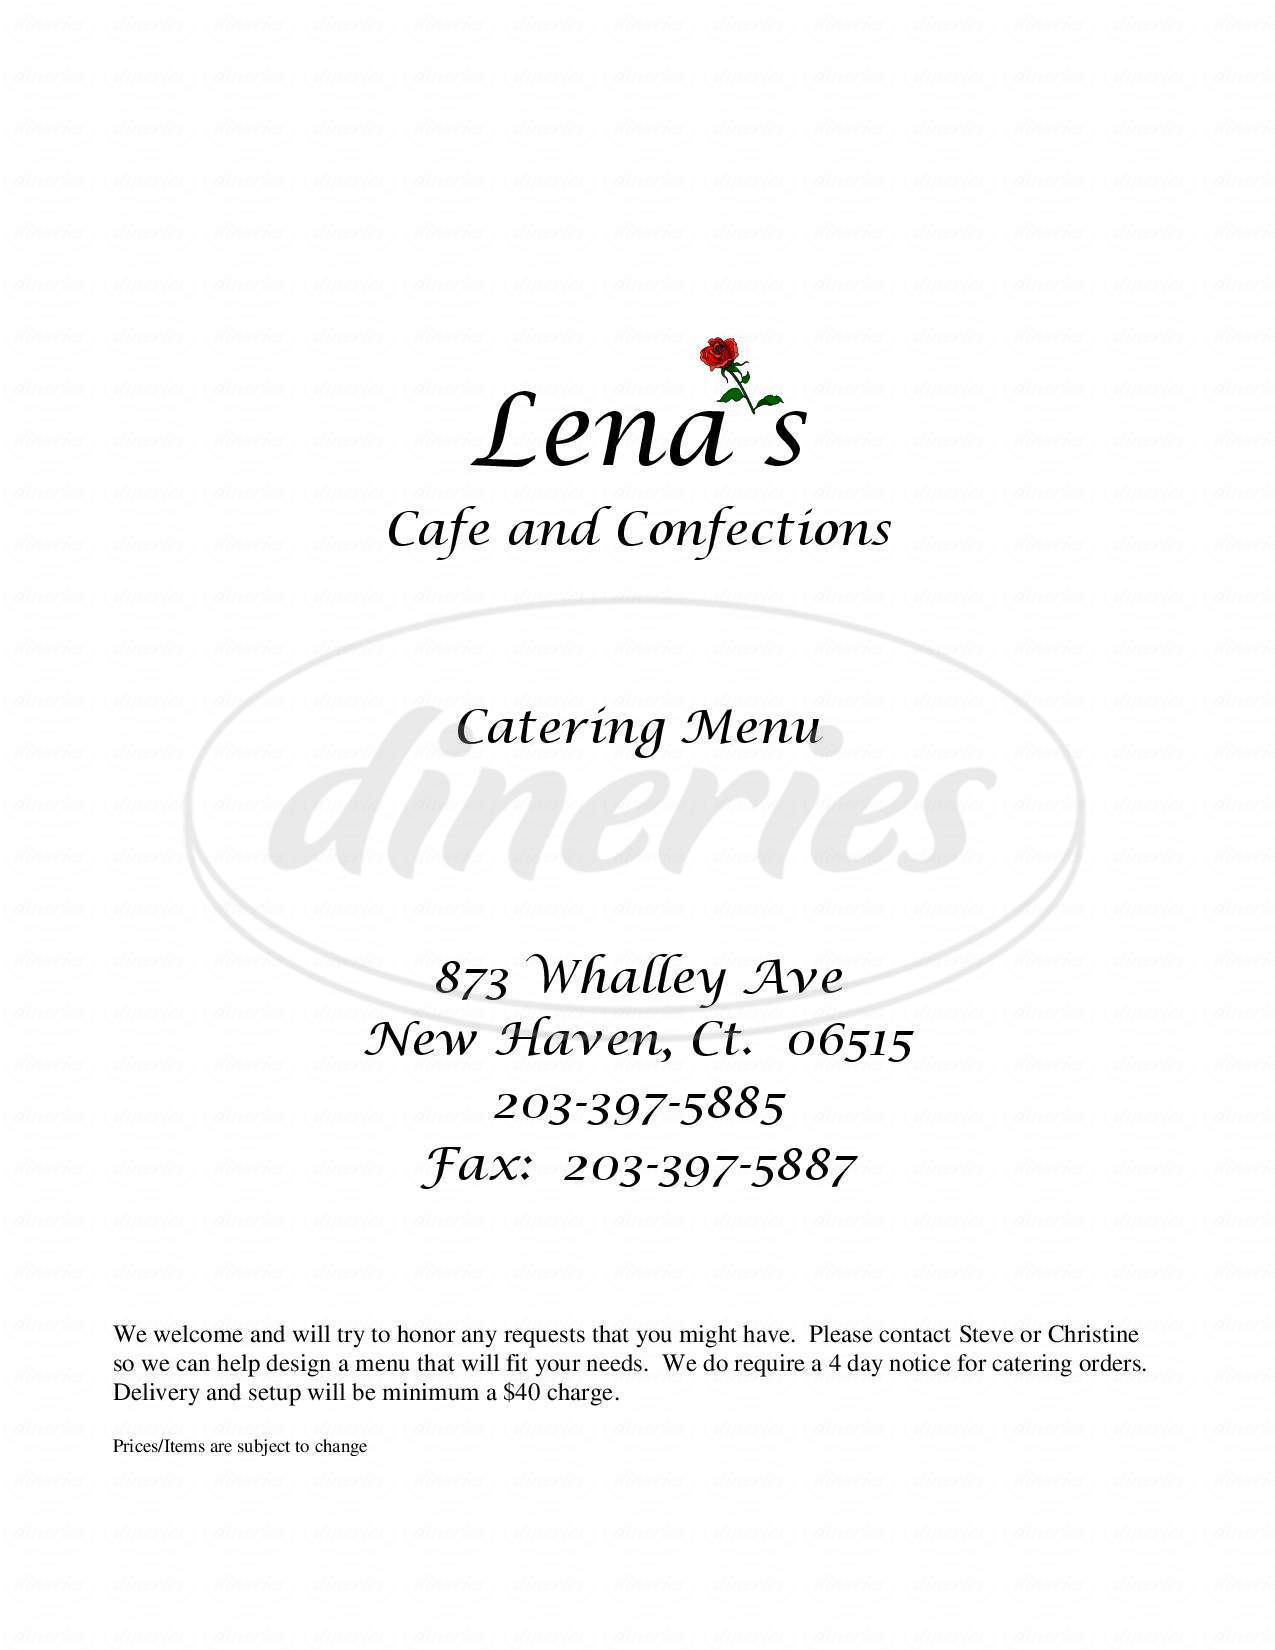 menu for Lena's Cafe & Confections